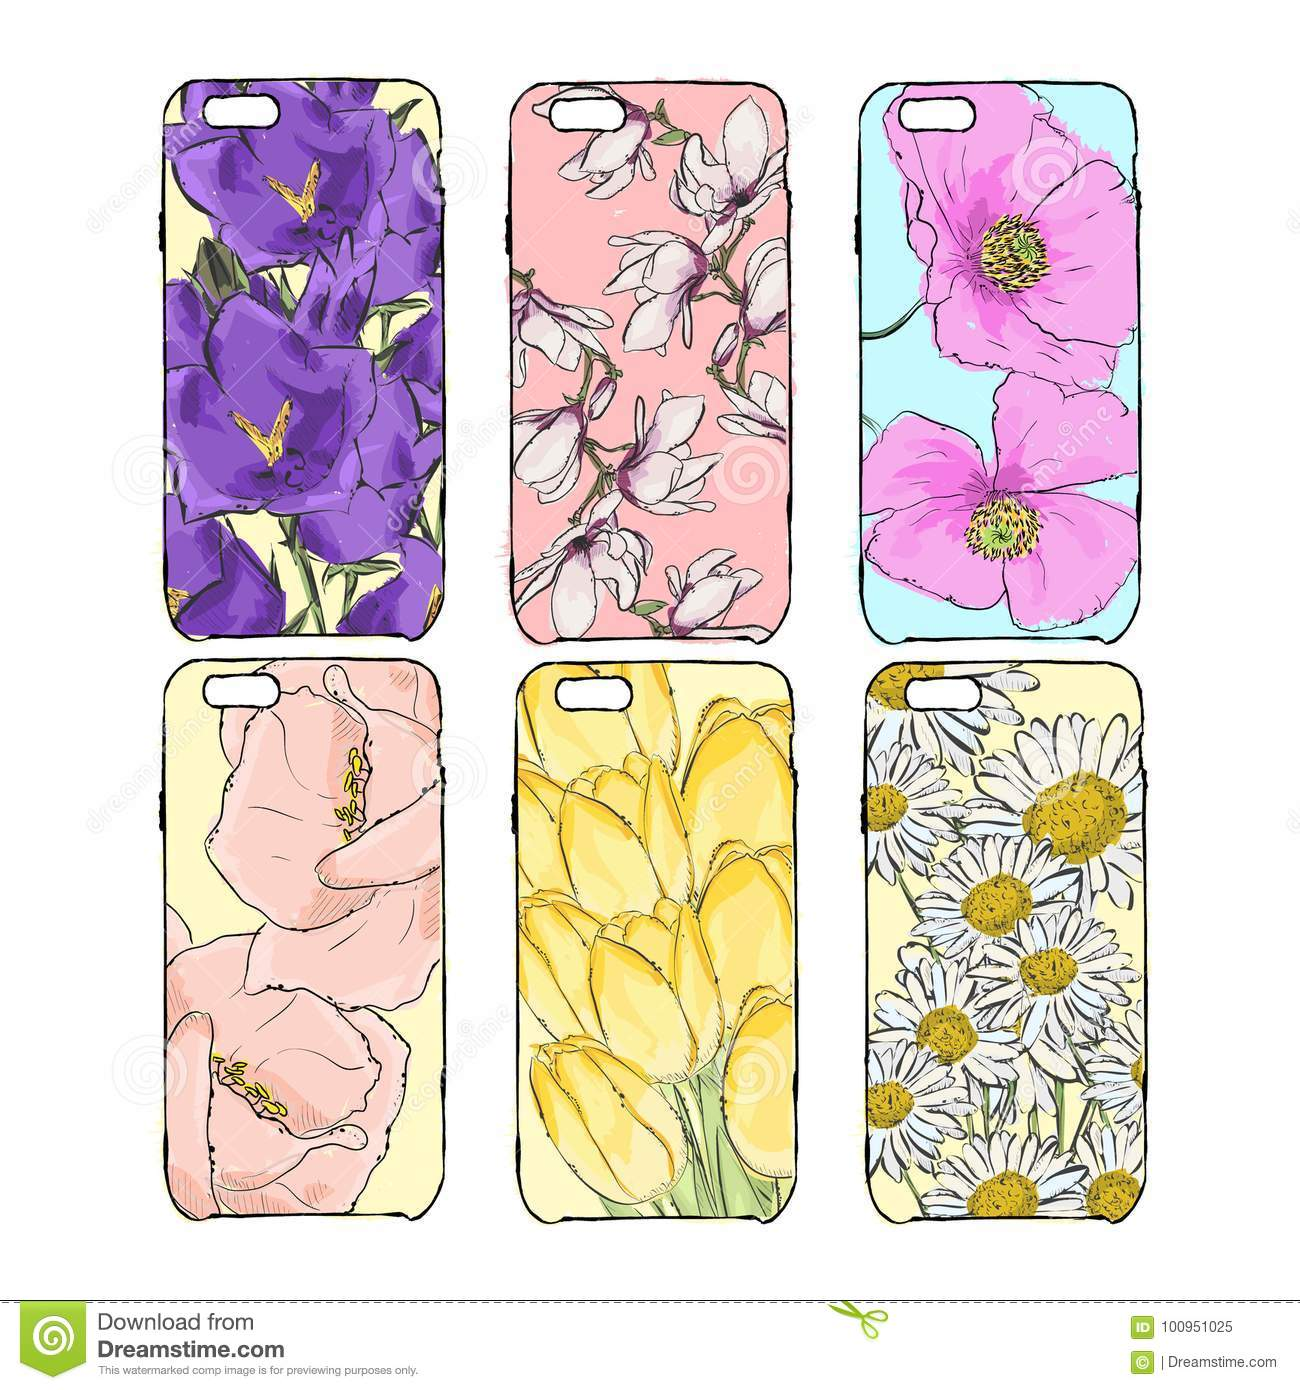 Hand Drawn Illustration Of Phone Accessories Isolated From